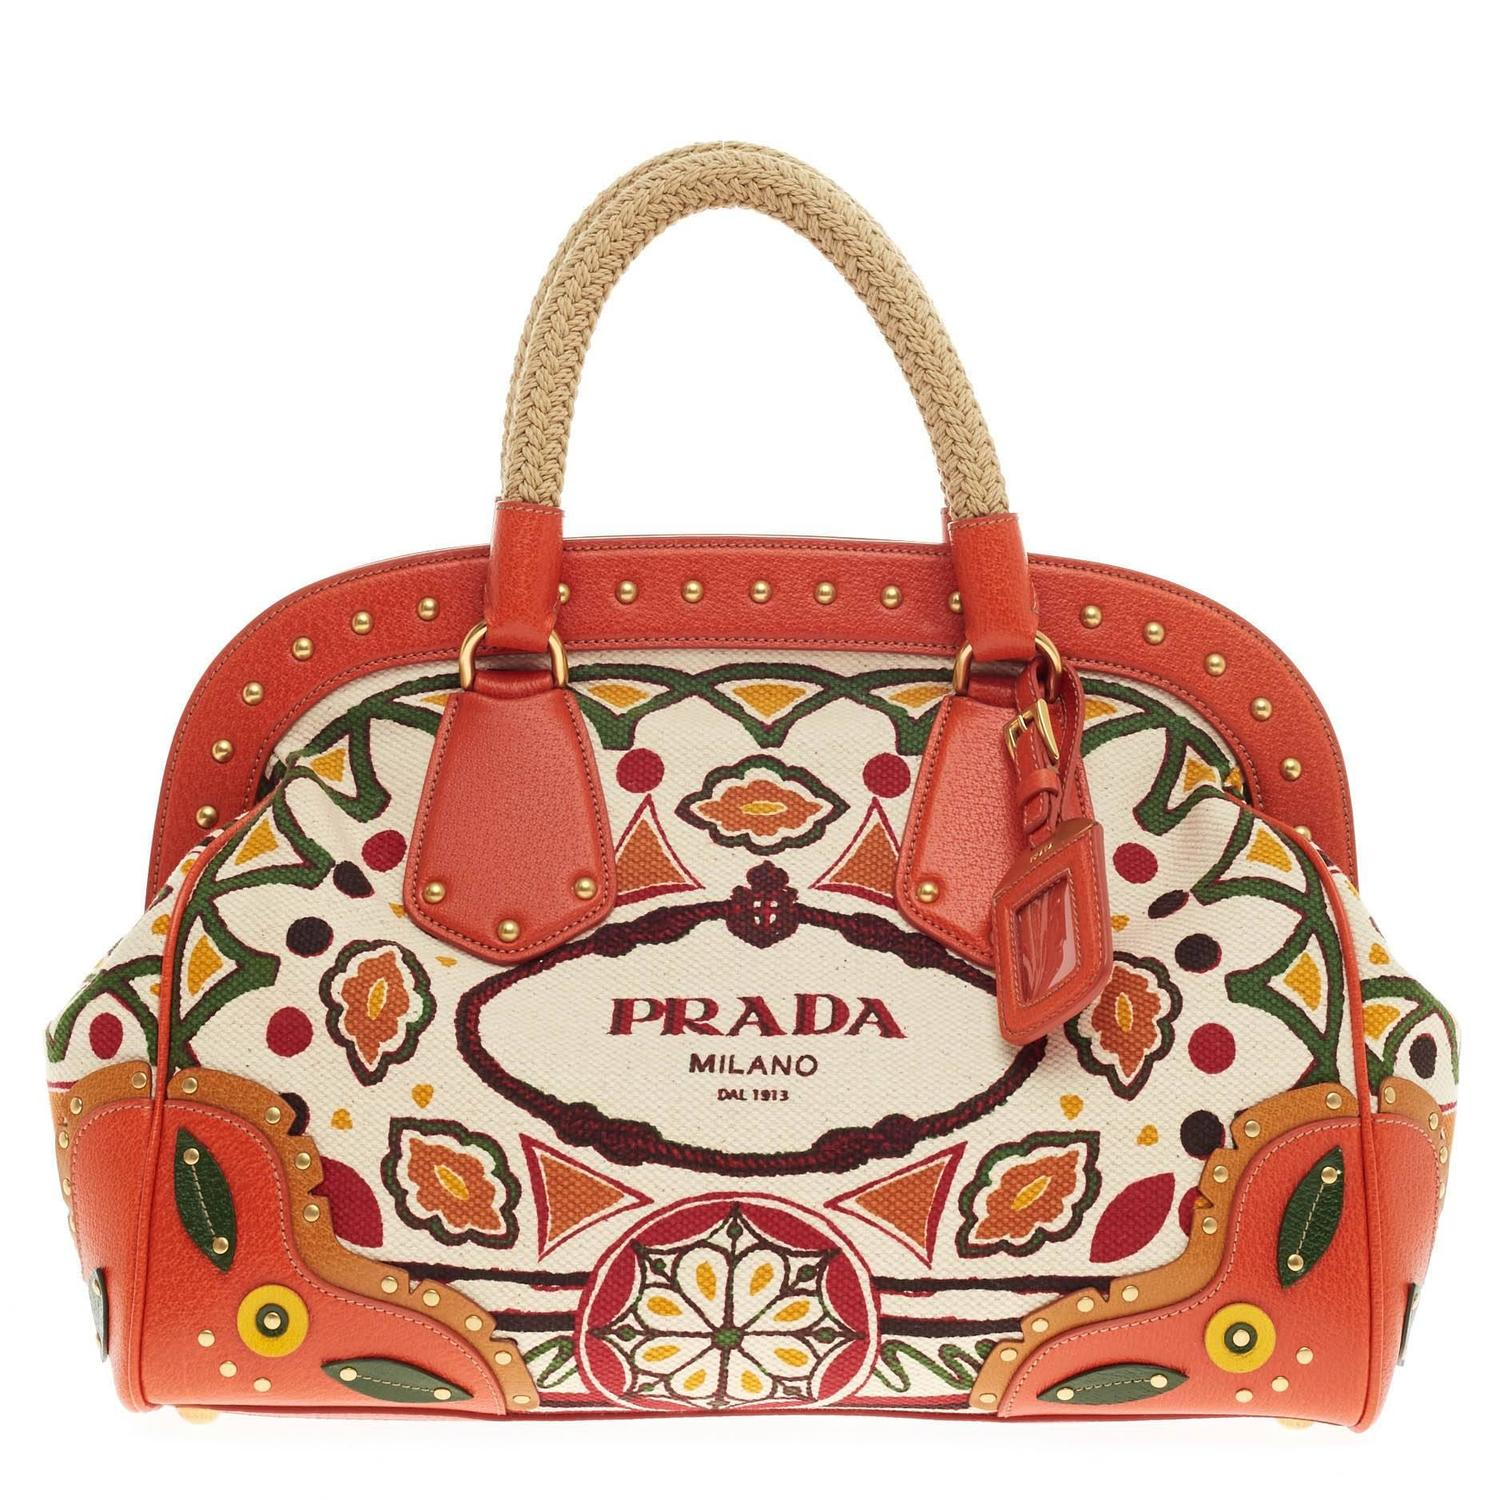 prada canapa leather handle bag